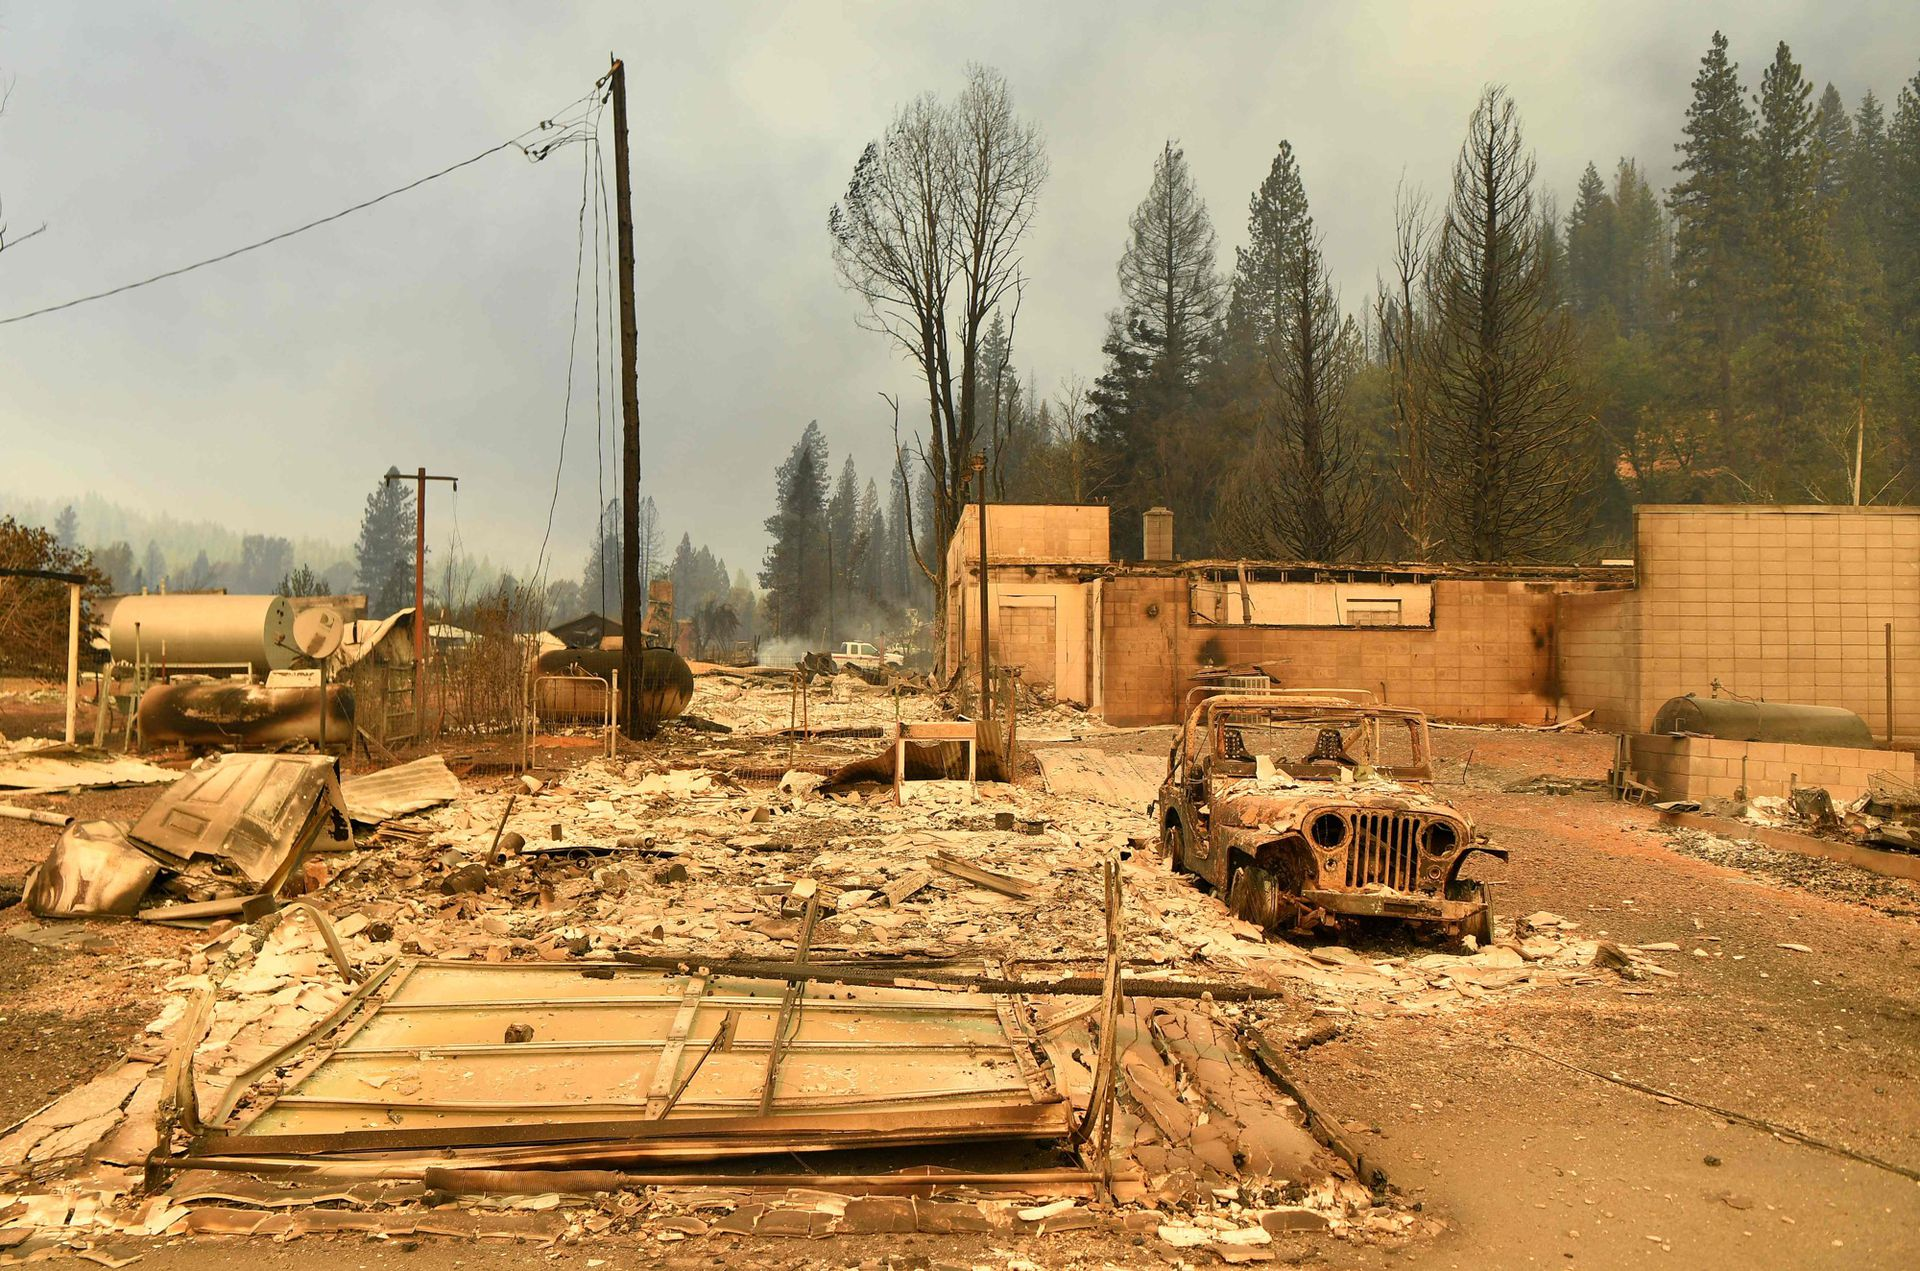 California's largest wildfire devastated a small town, destroying historic buildings hours after residents were ordered to flee.